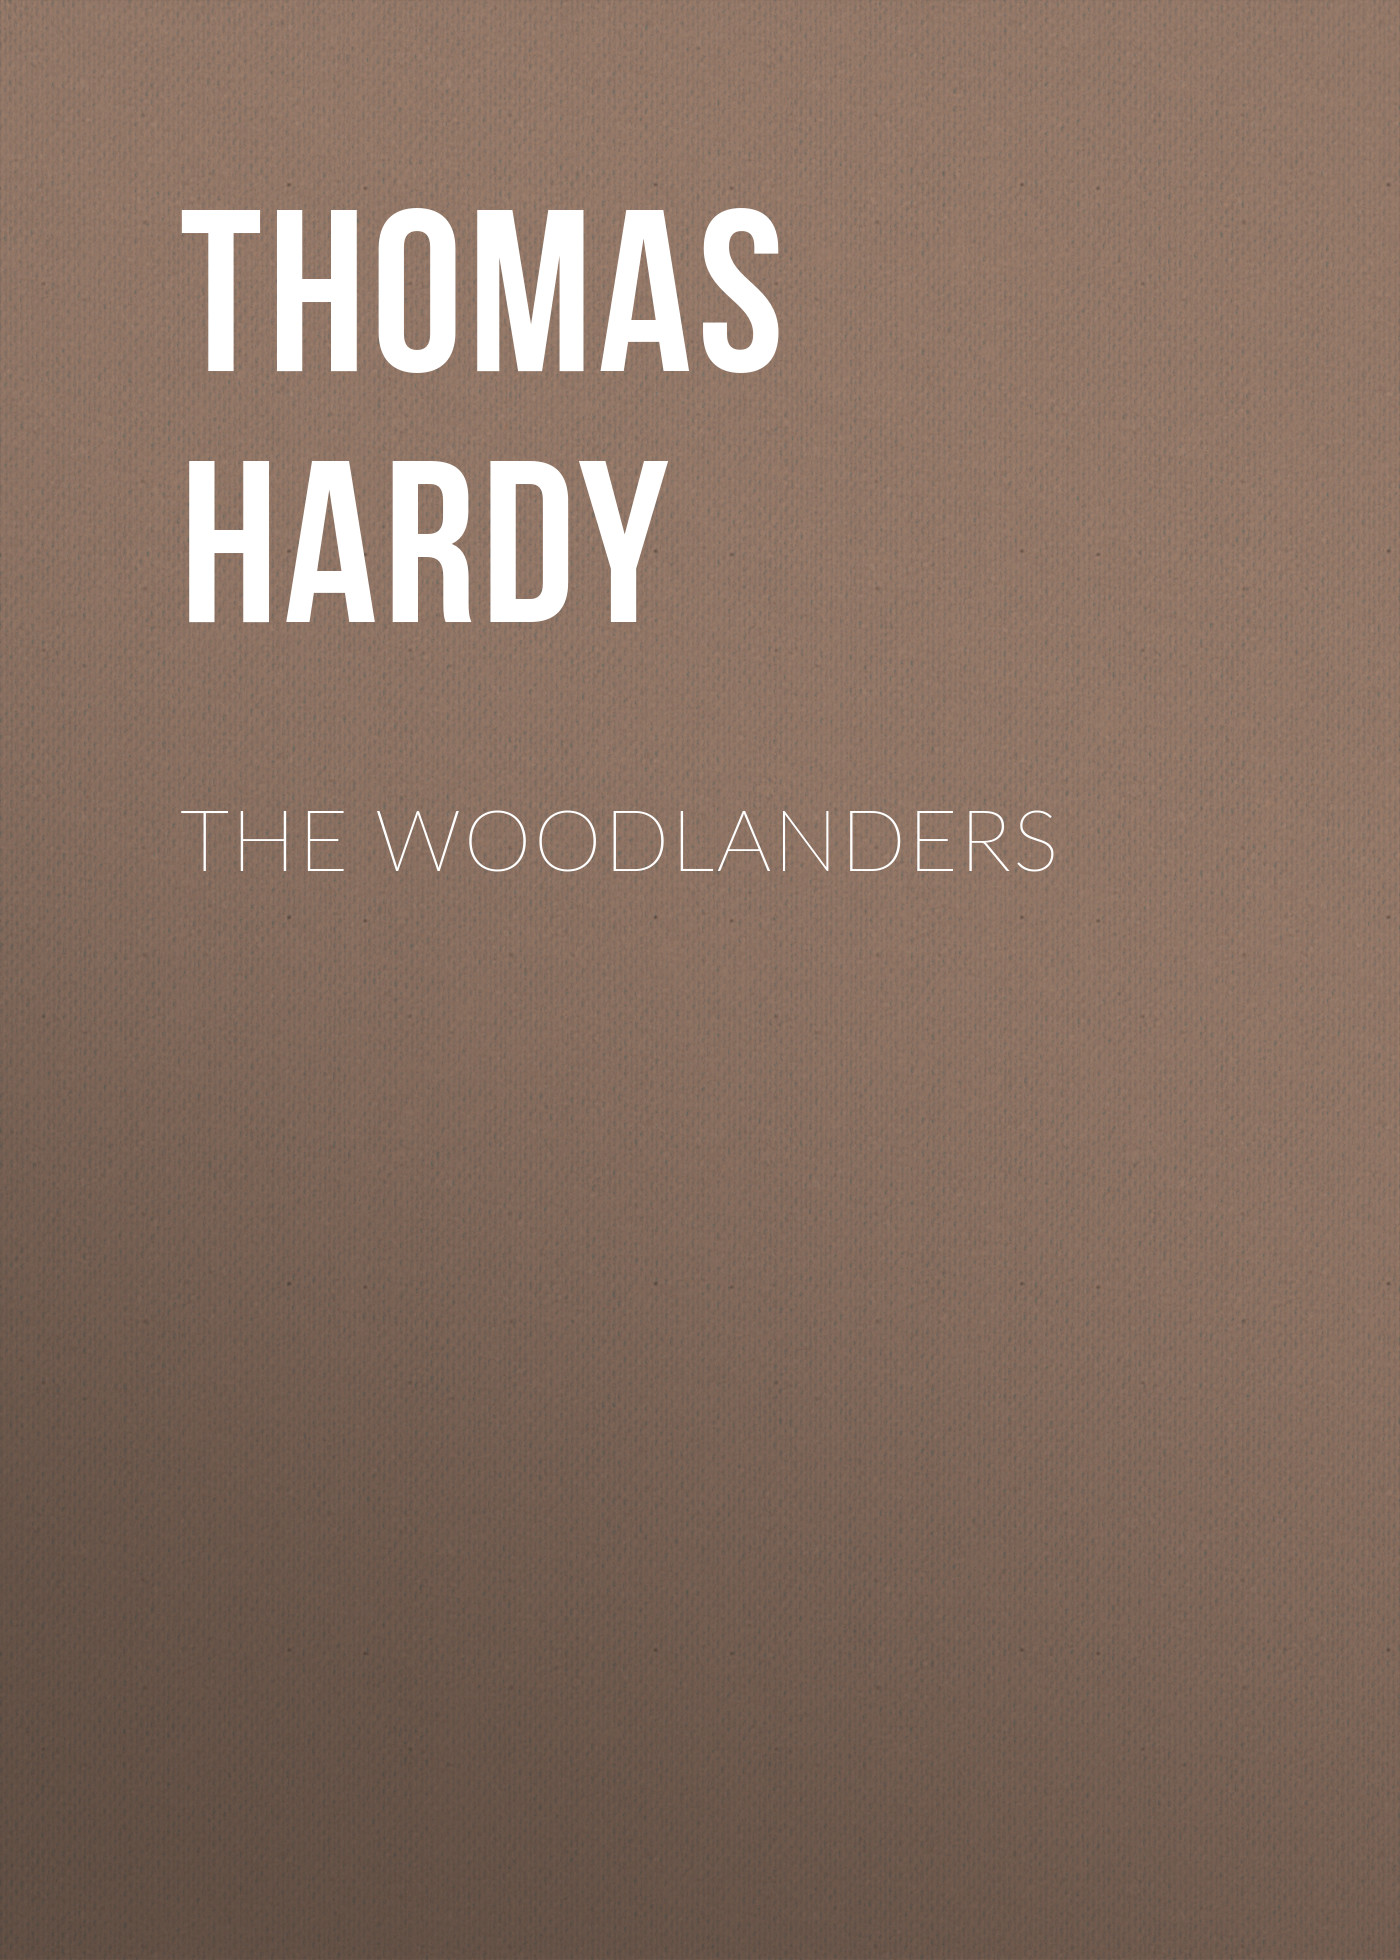 Thomas Hardy The Woodlanders john vincent the bioinorganic chemistry of chromium